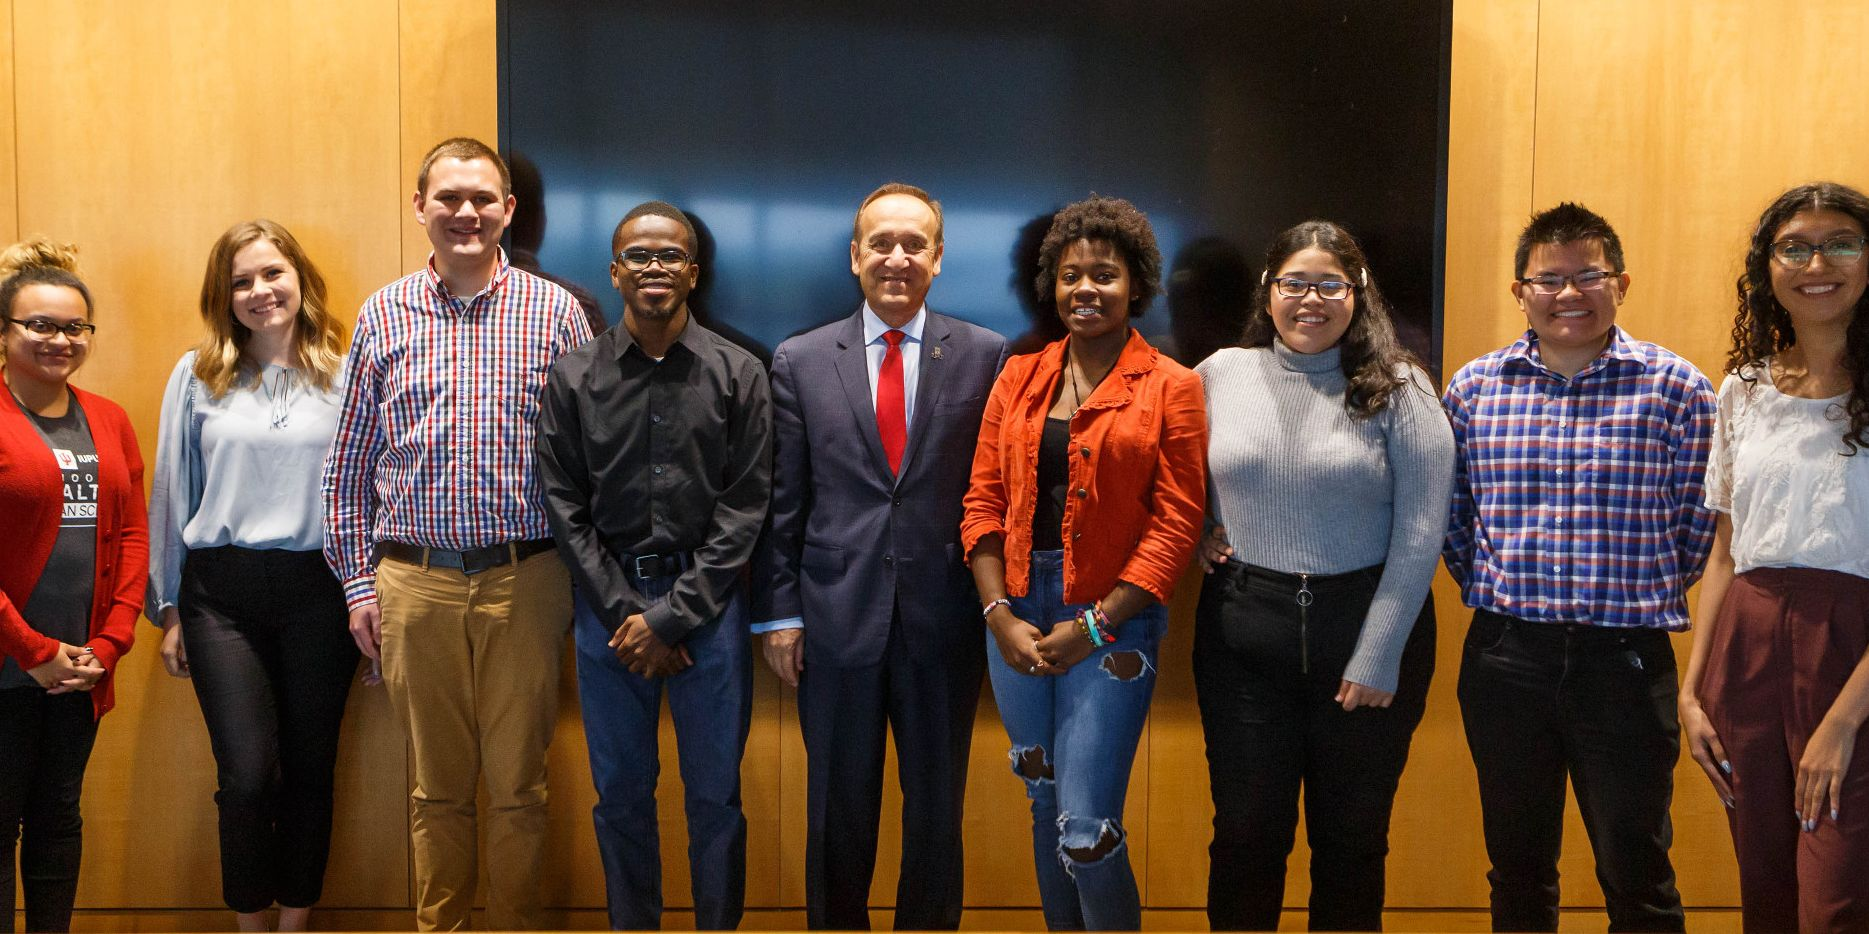 Members of the Chancellor's Student Advisory Board pose and smile with Chancellor Paydar.